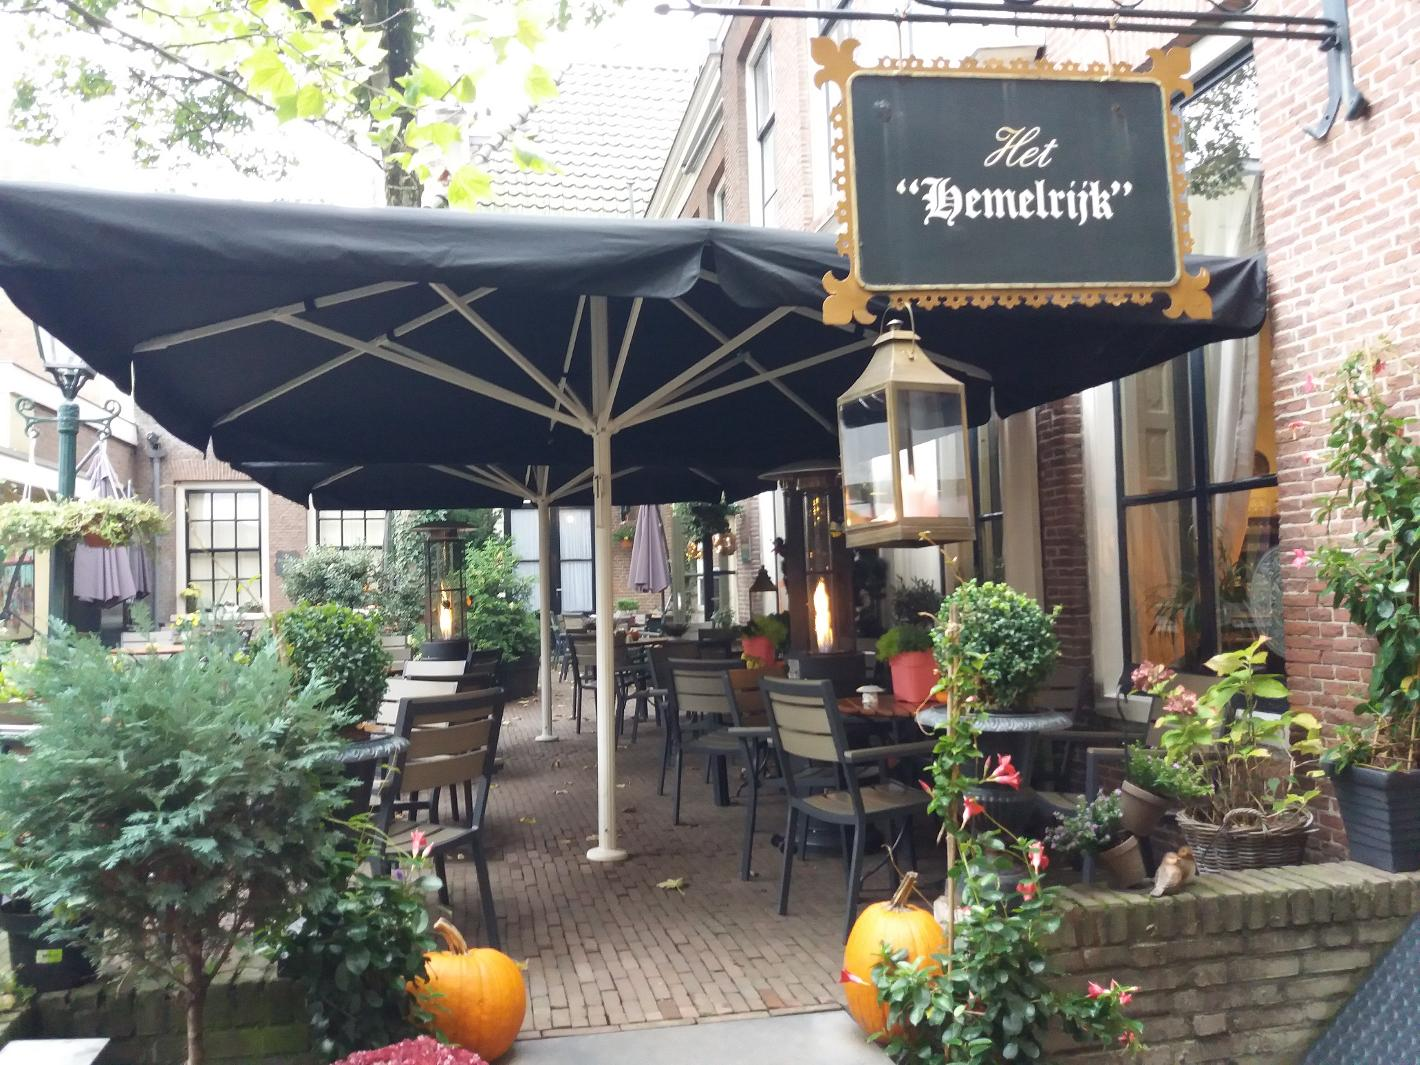 Photo Koffiehuis het Hemelrijk in Arnhem, Eat & drink, Drink coffee tea, Enjoy delicious lunch - #4